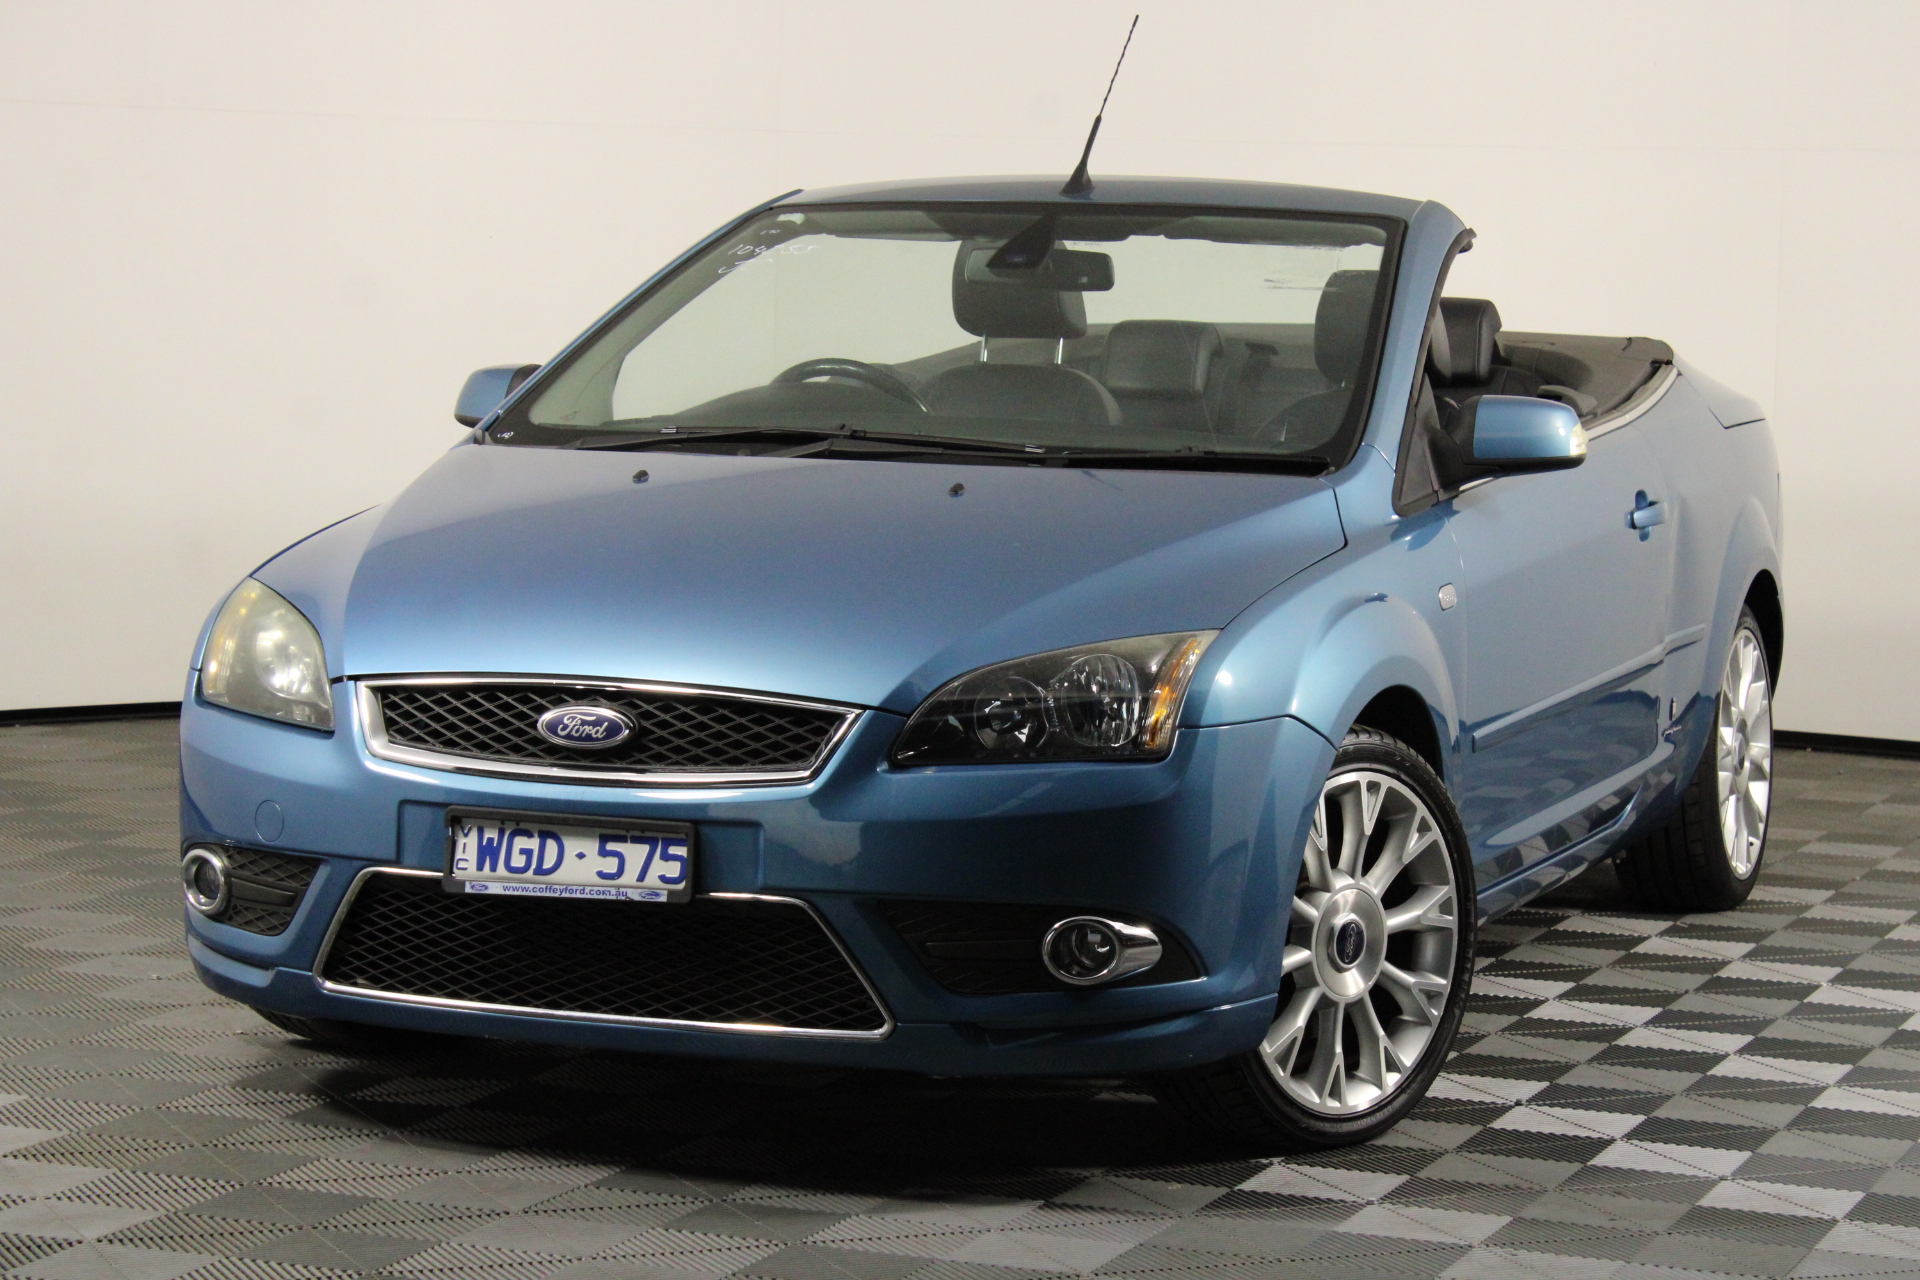 2008 Ford Focus Coupe-Cabriolet LT Automatic Convertible